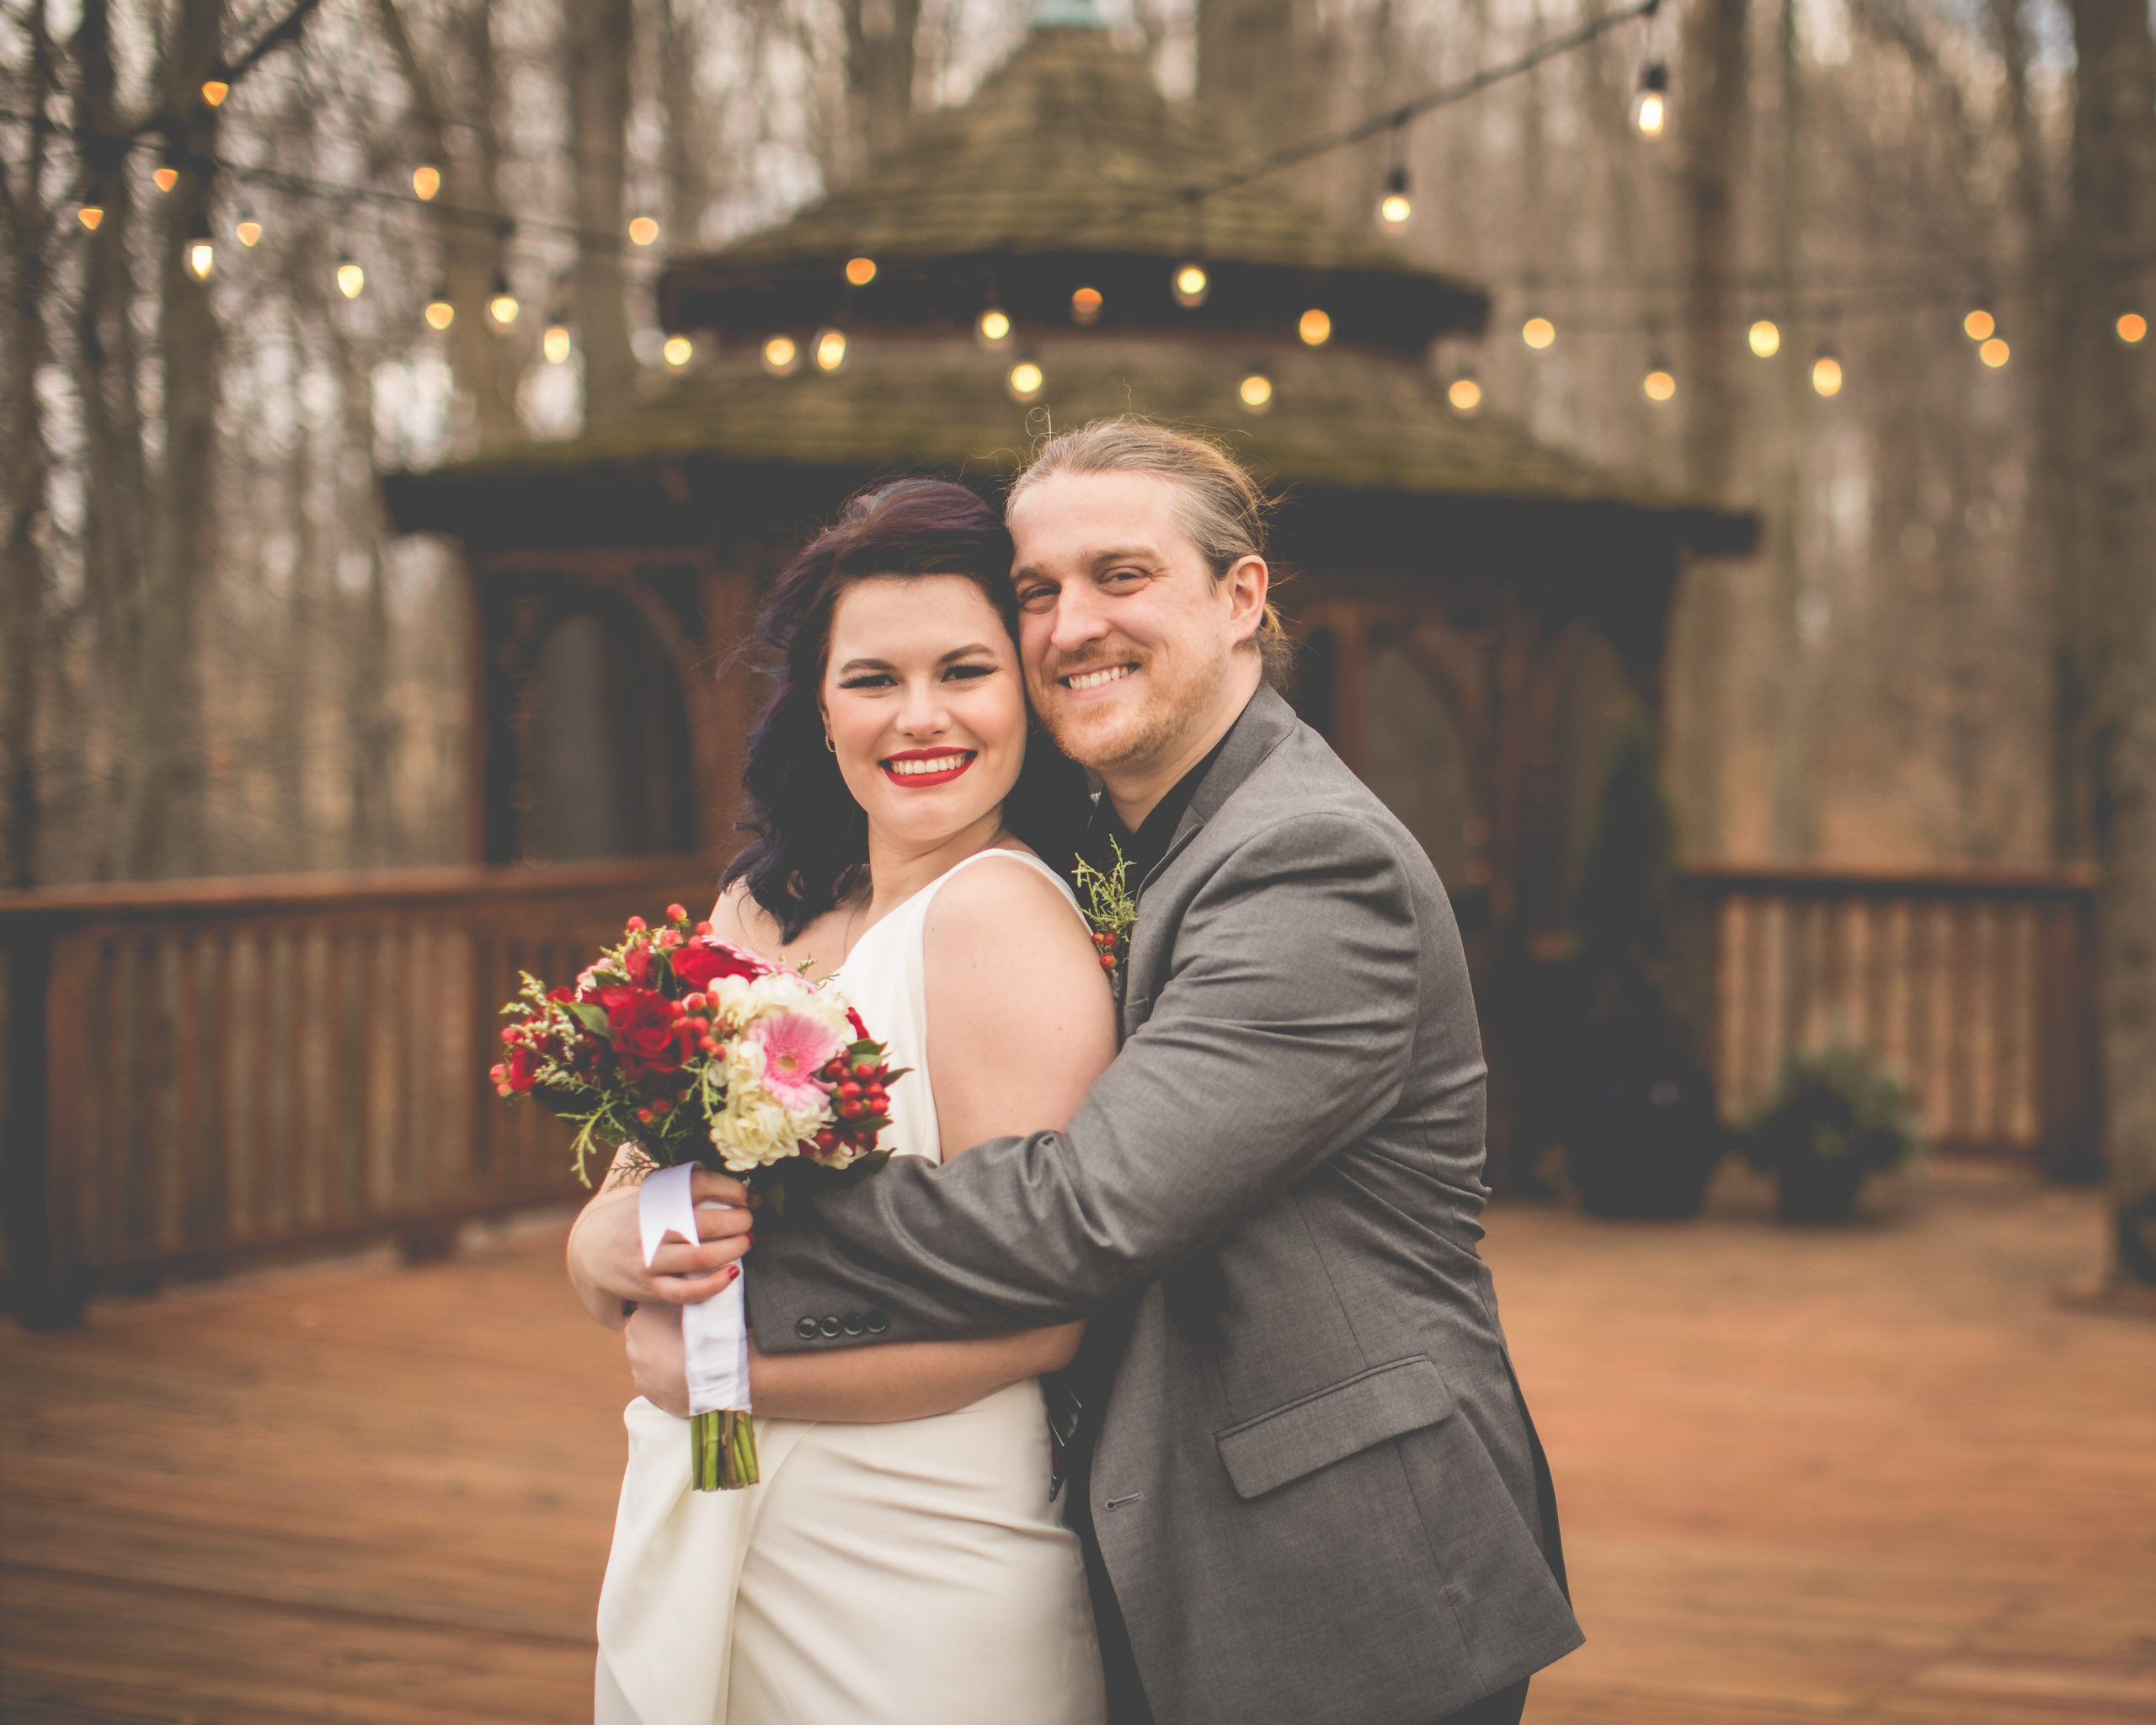 Michigan Wedding, bride and groom embrace on gazebo deck